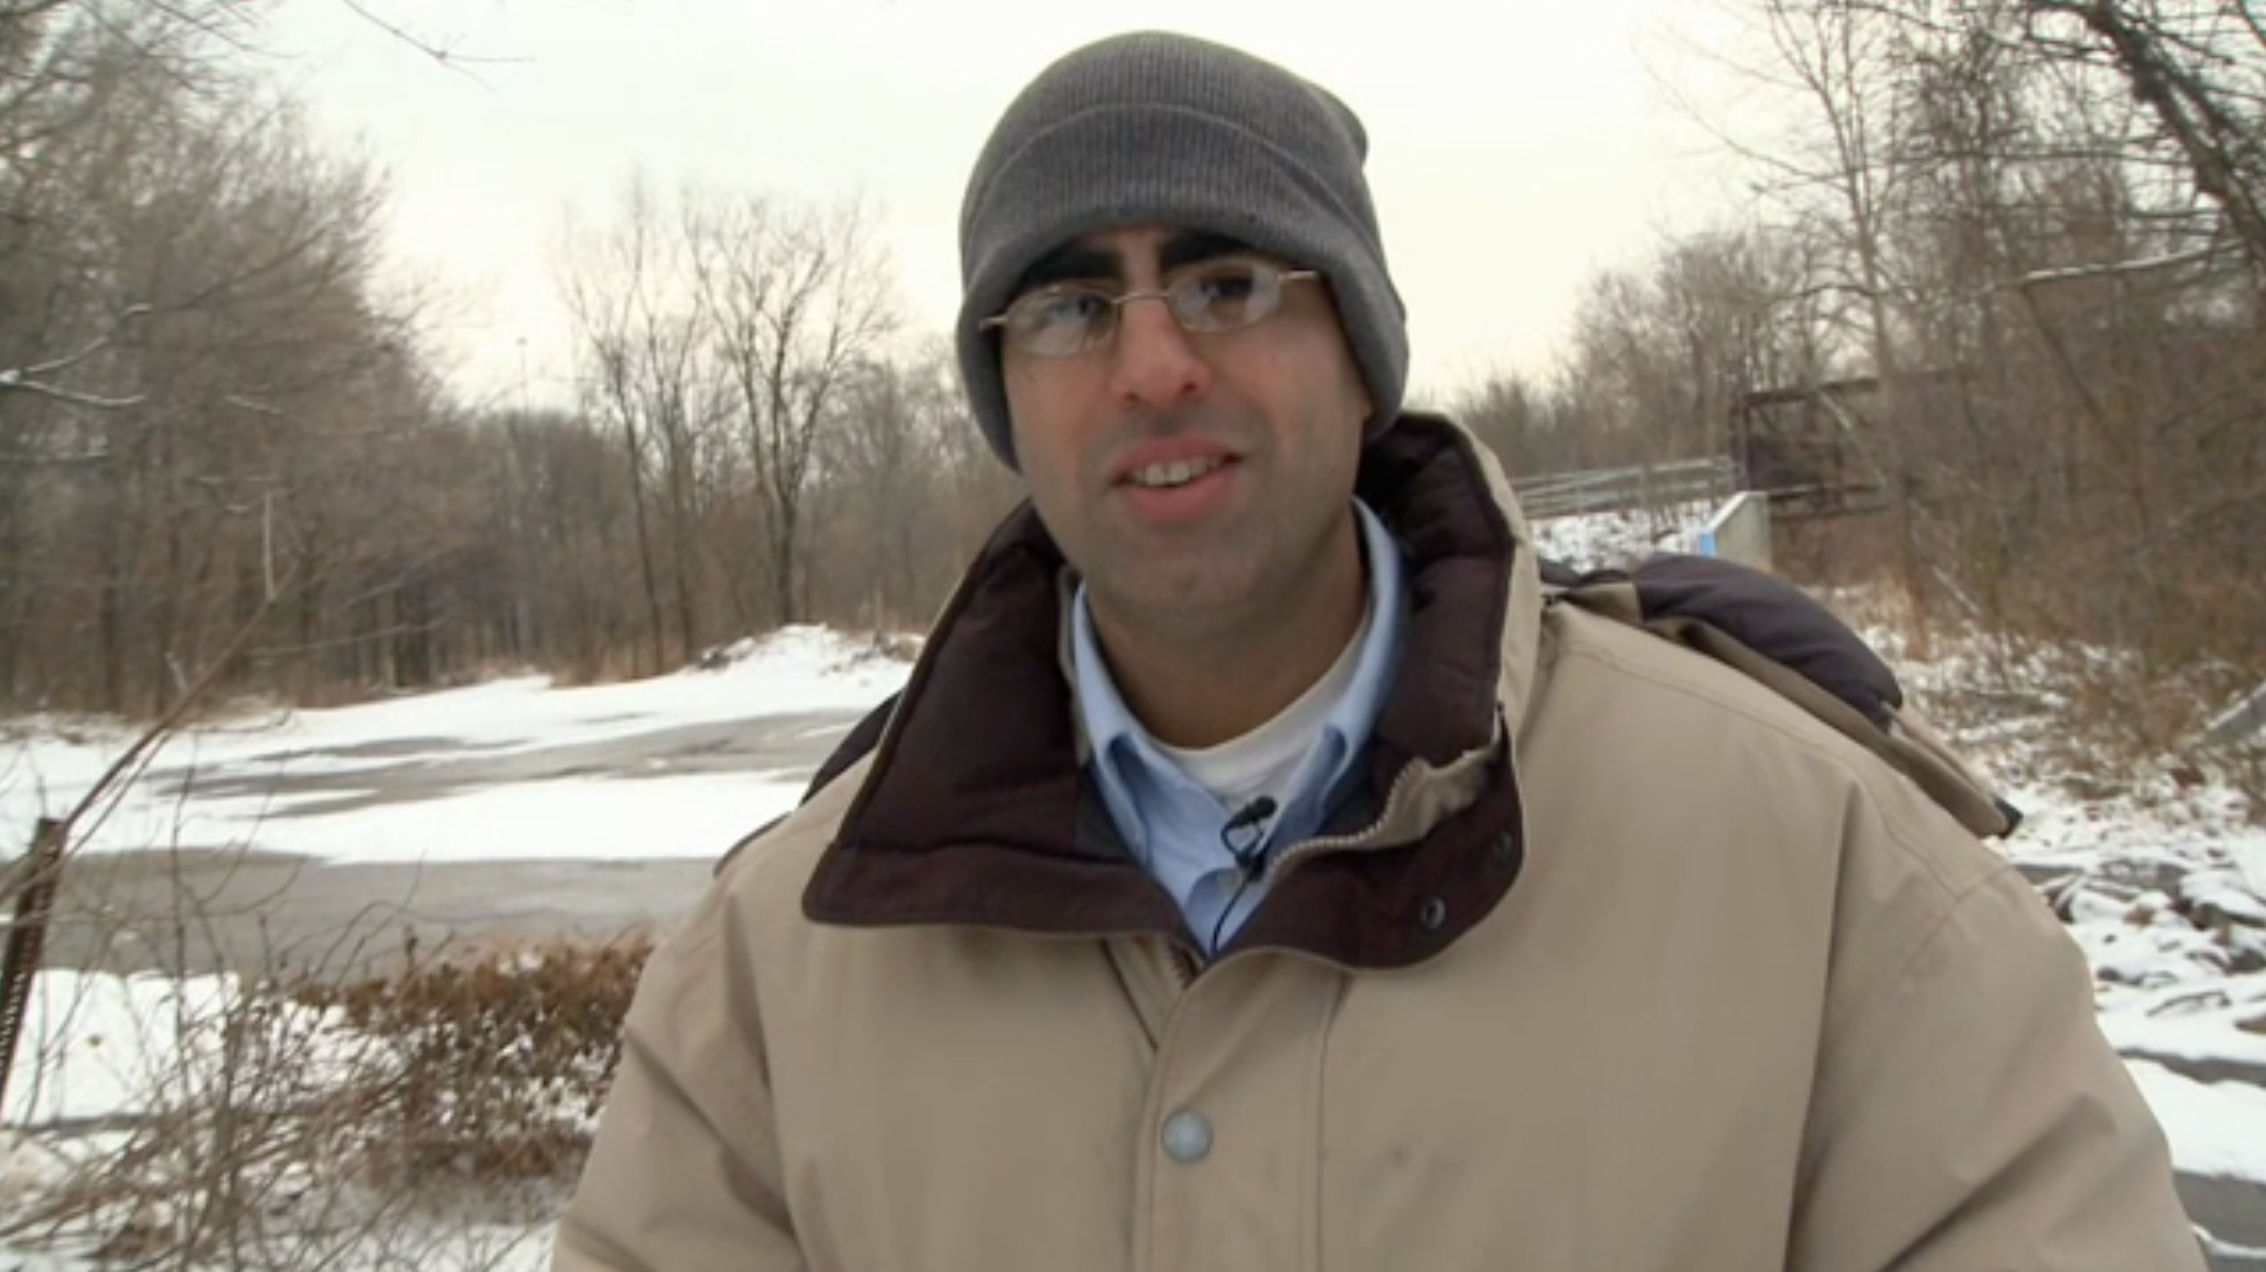 A man, scientist Sujay Kaushal, wearing a knit hat, jacket, and lavalier microphone on shirt collar outside in the snow, with trees in the background.